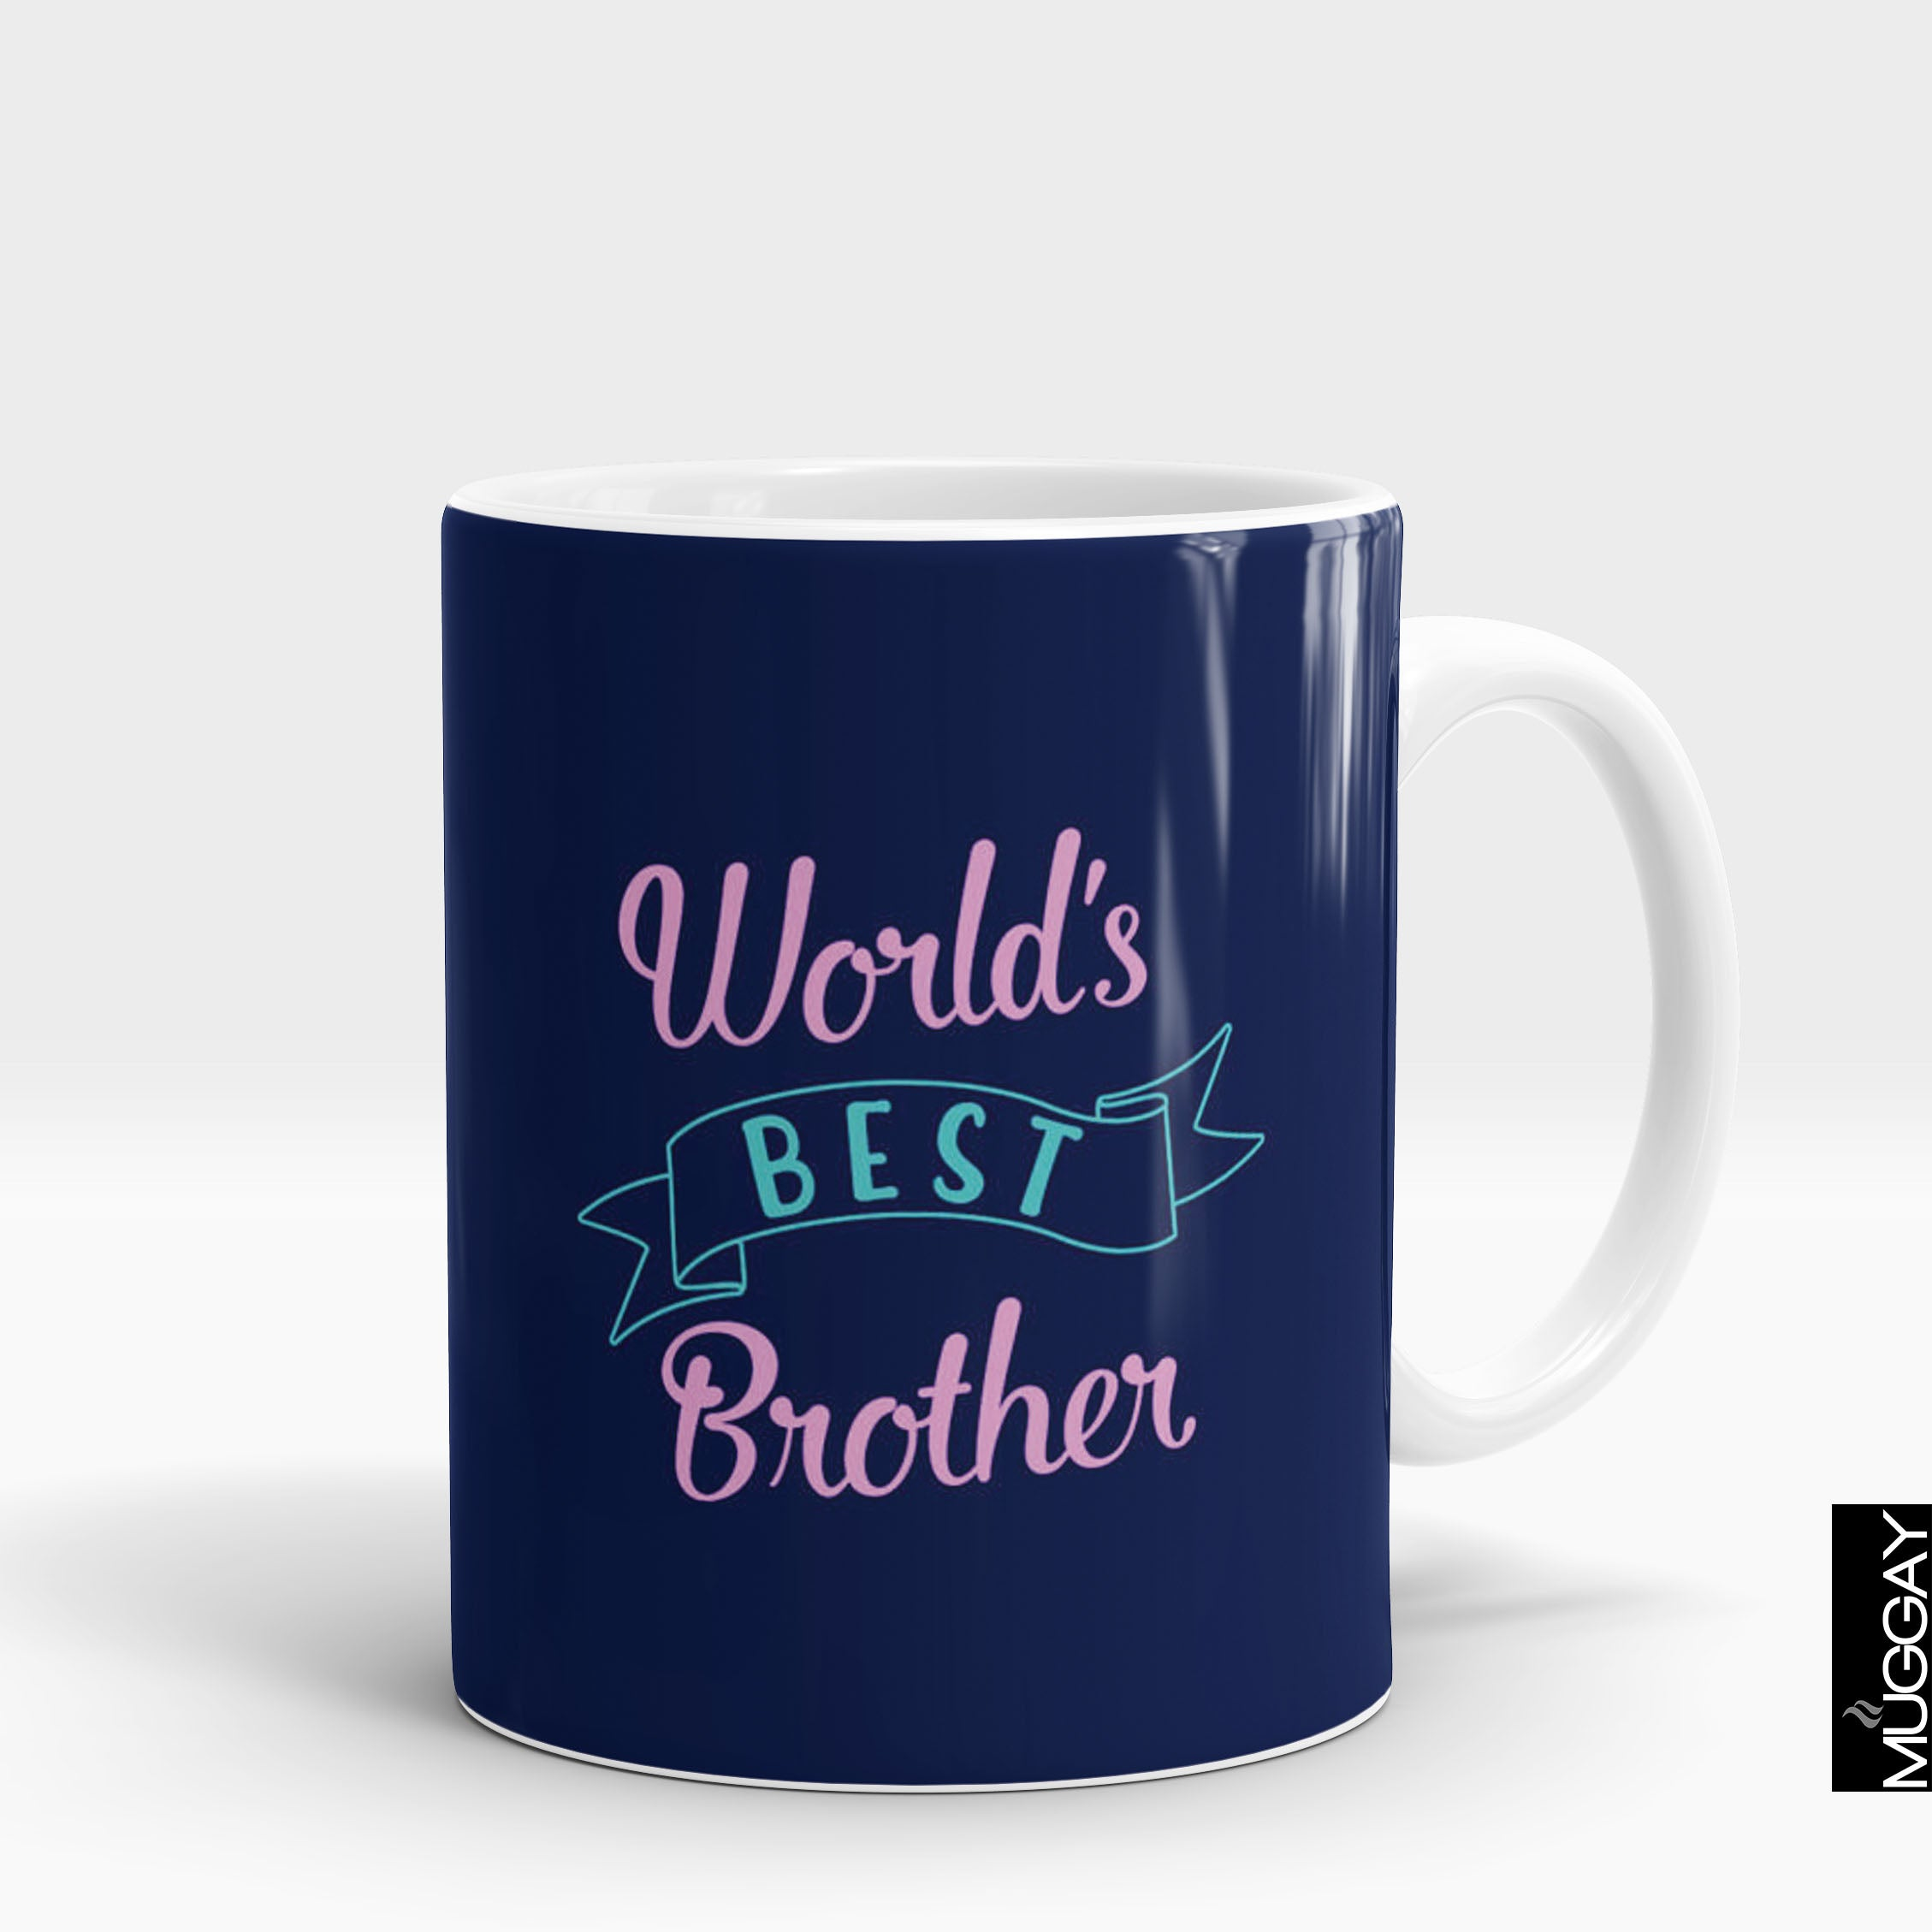 Bro4 - Muggay.com - Mugs - Printing shop - truck Art mugs - Mug printing - Customized printing - Digital printing - Muggay